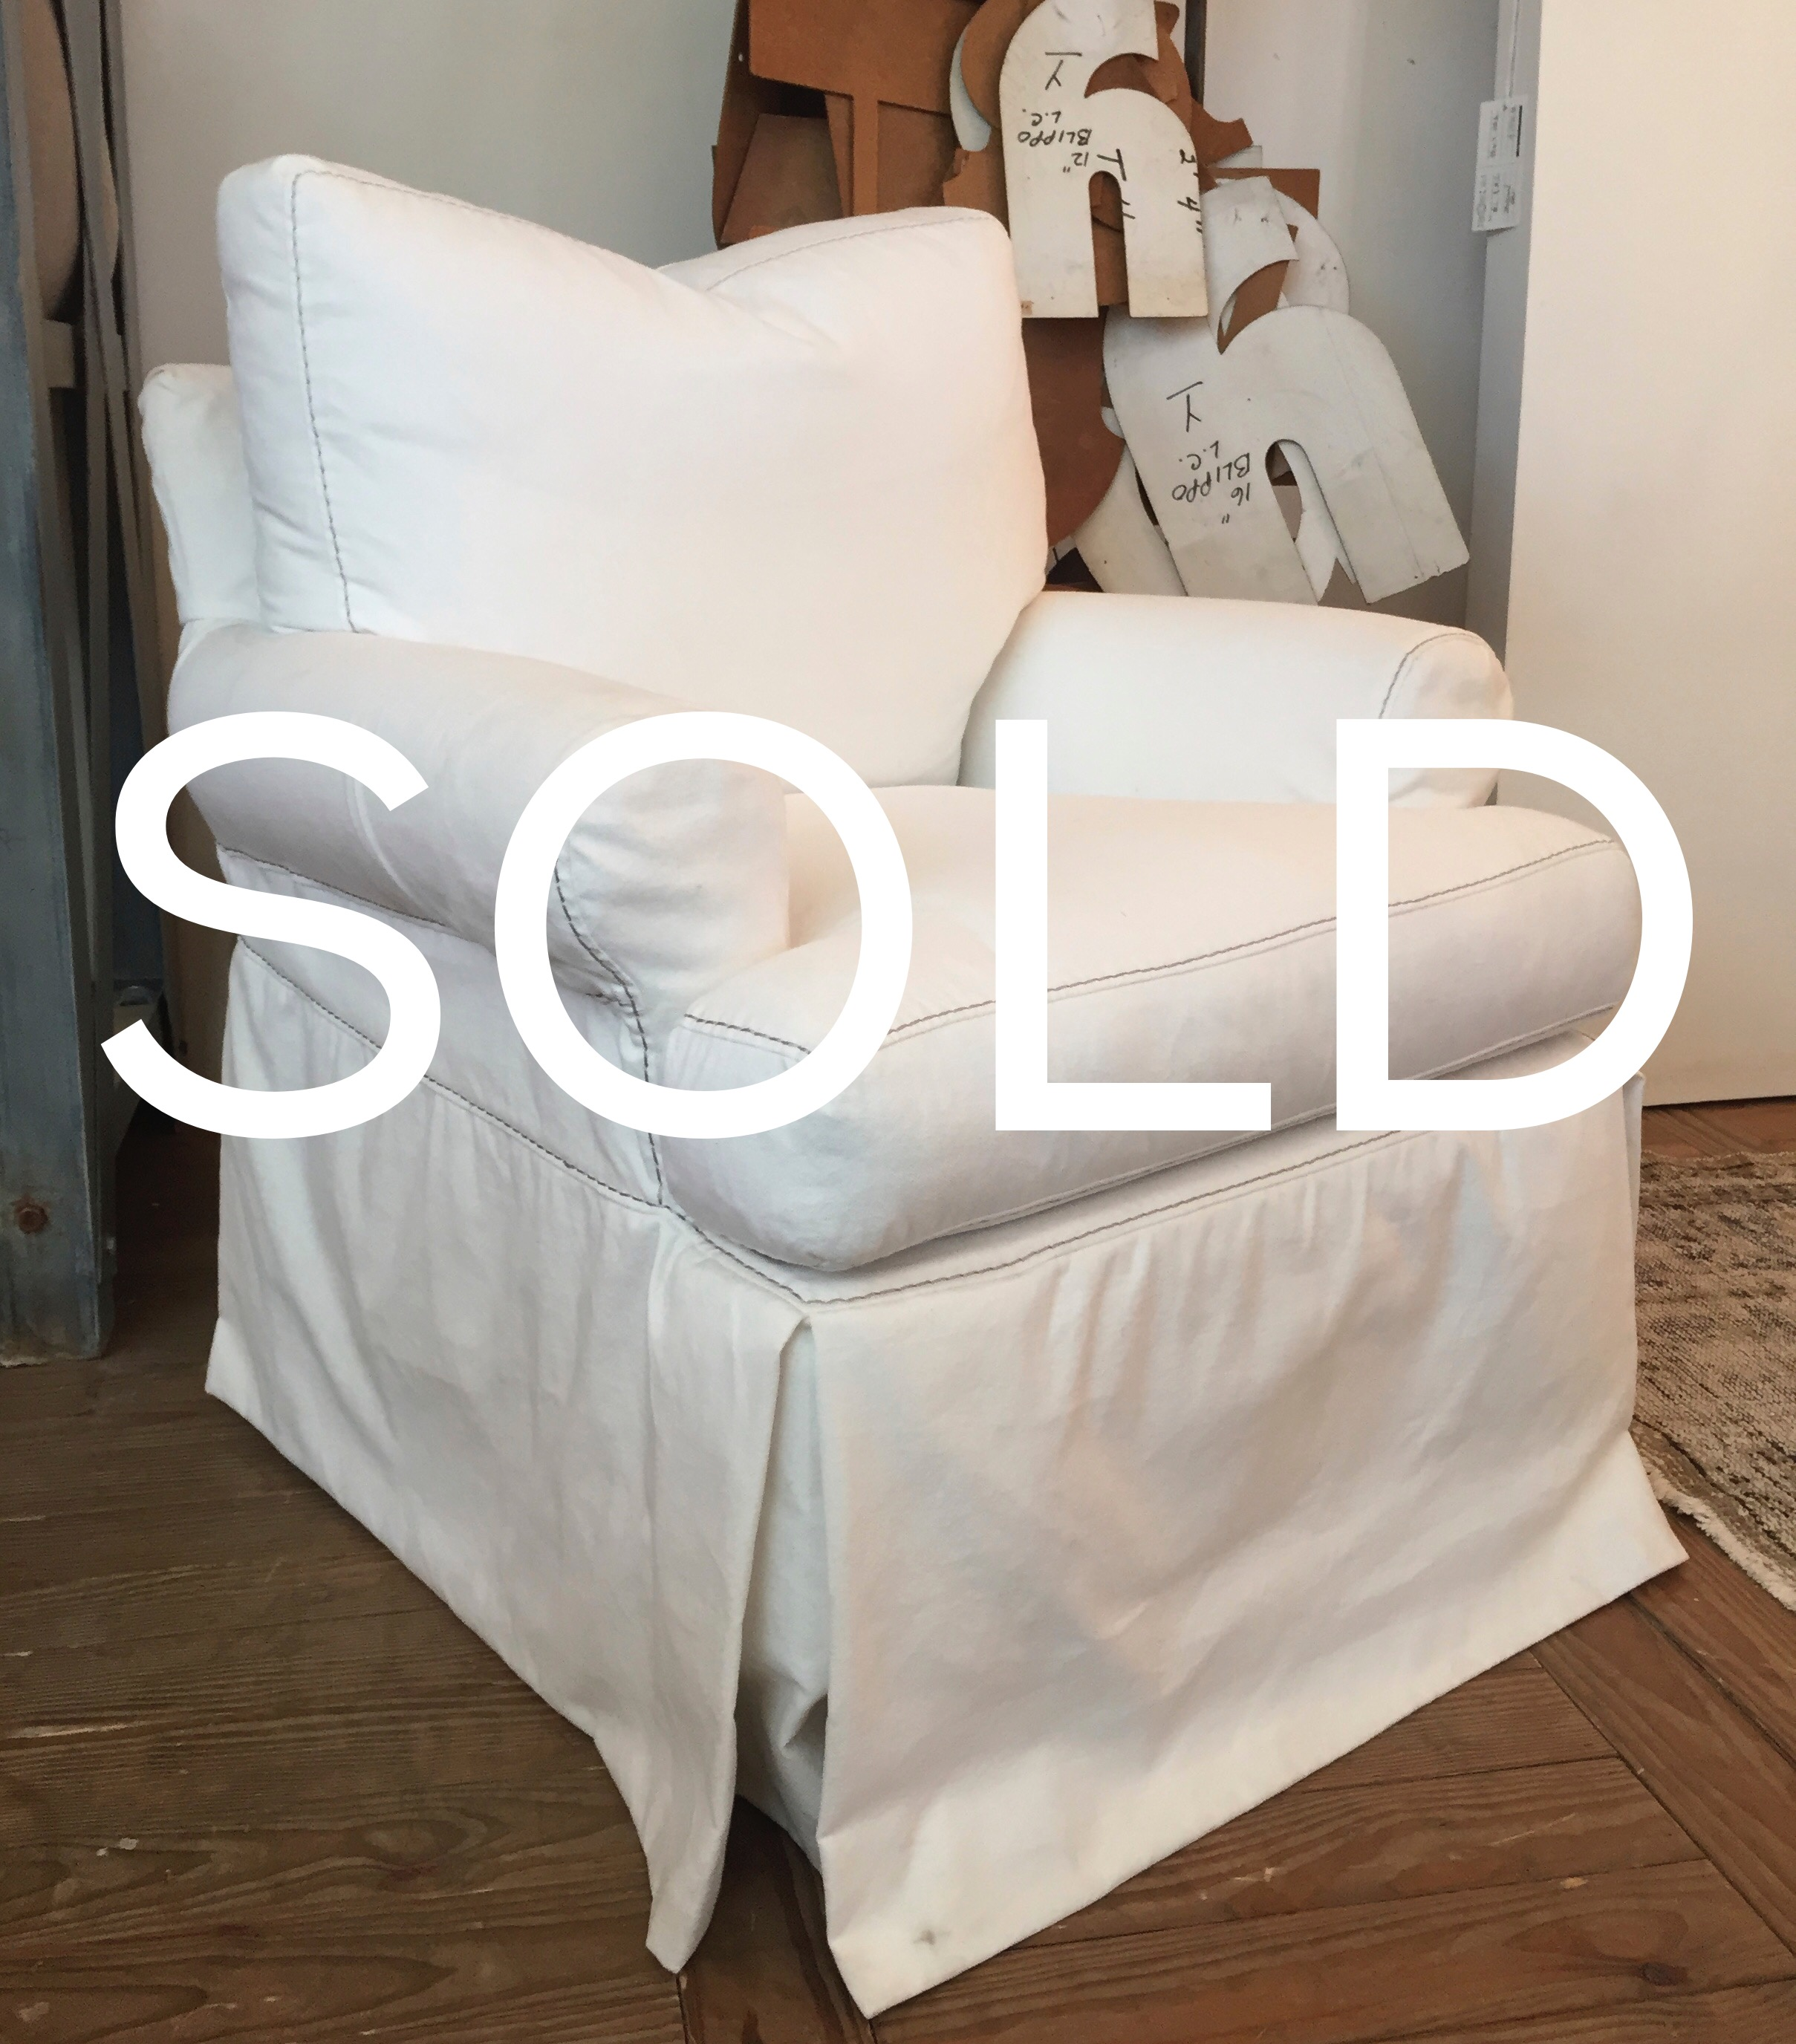 sold white chair.JPG